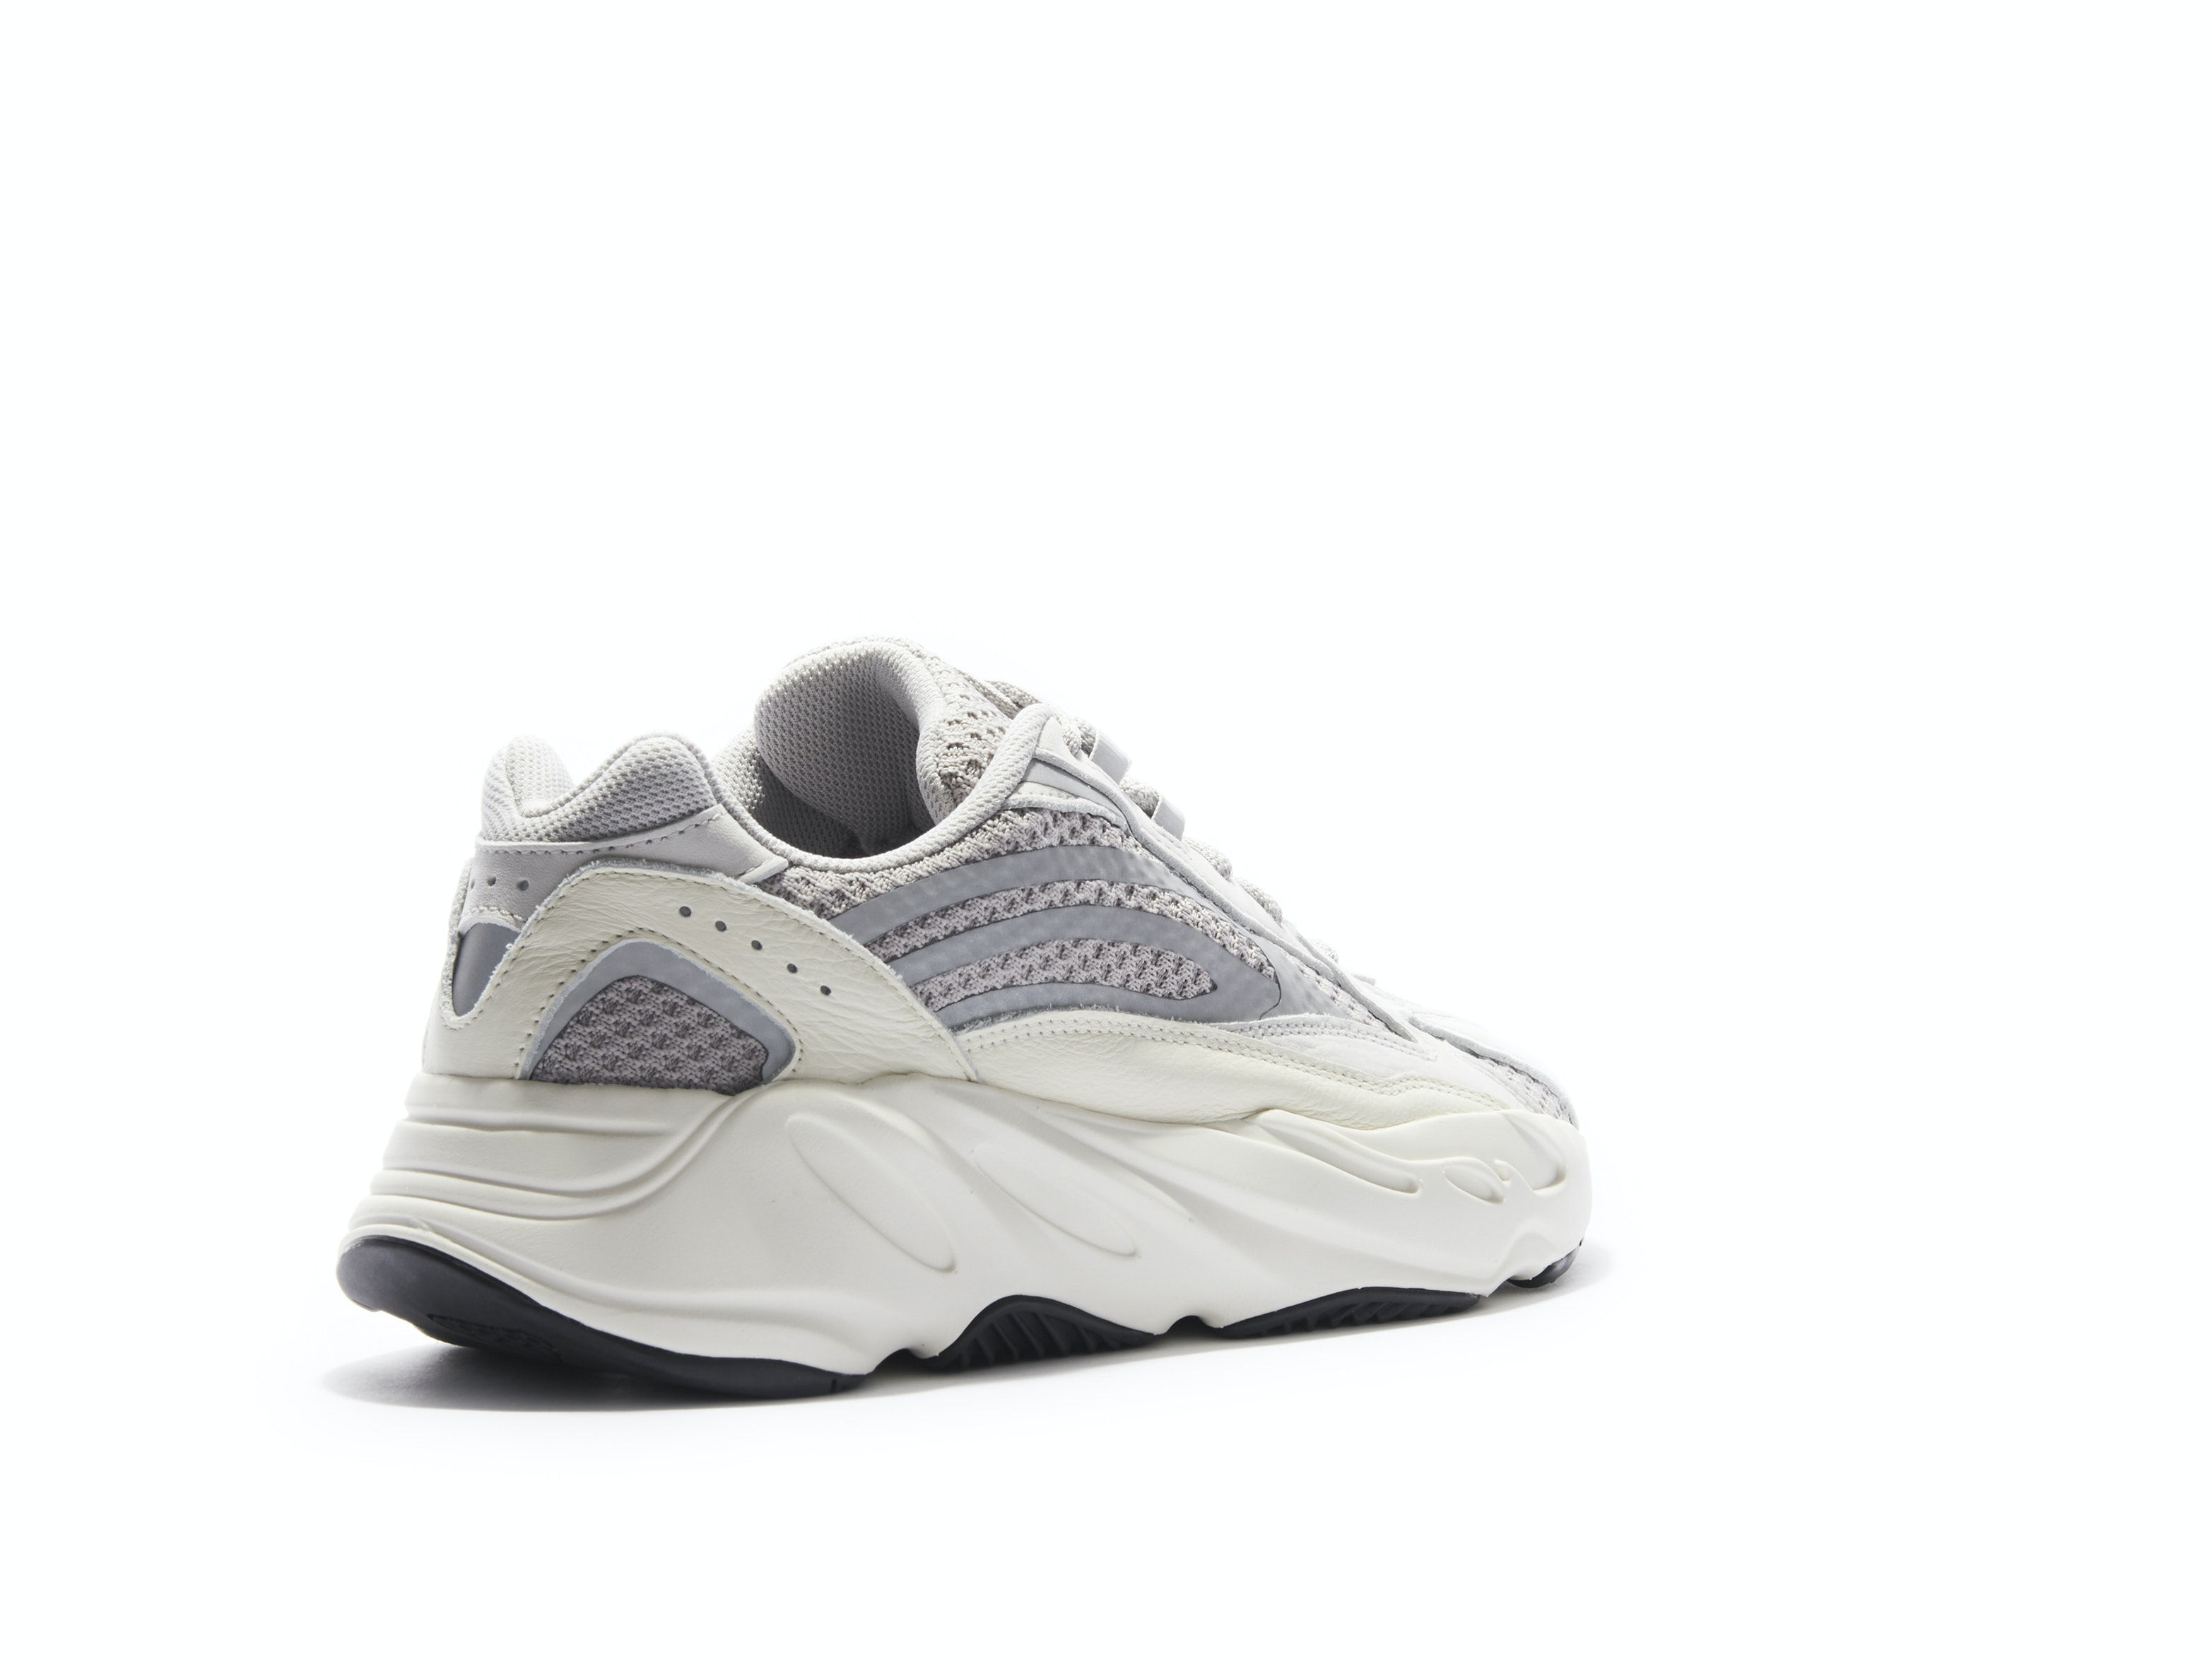 low priced 97c33 c0637 Yeezy Boost 700 V2 Static Trainers | Online Yeezy Boost 700 ...